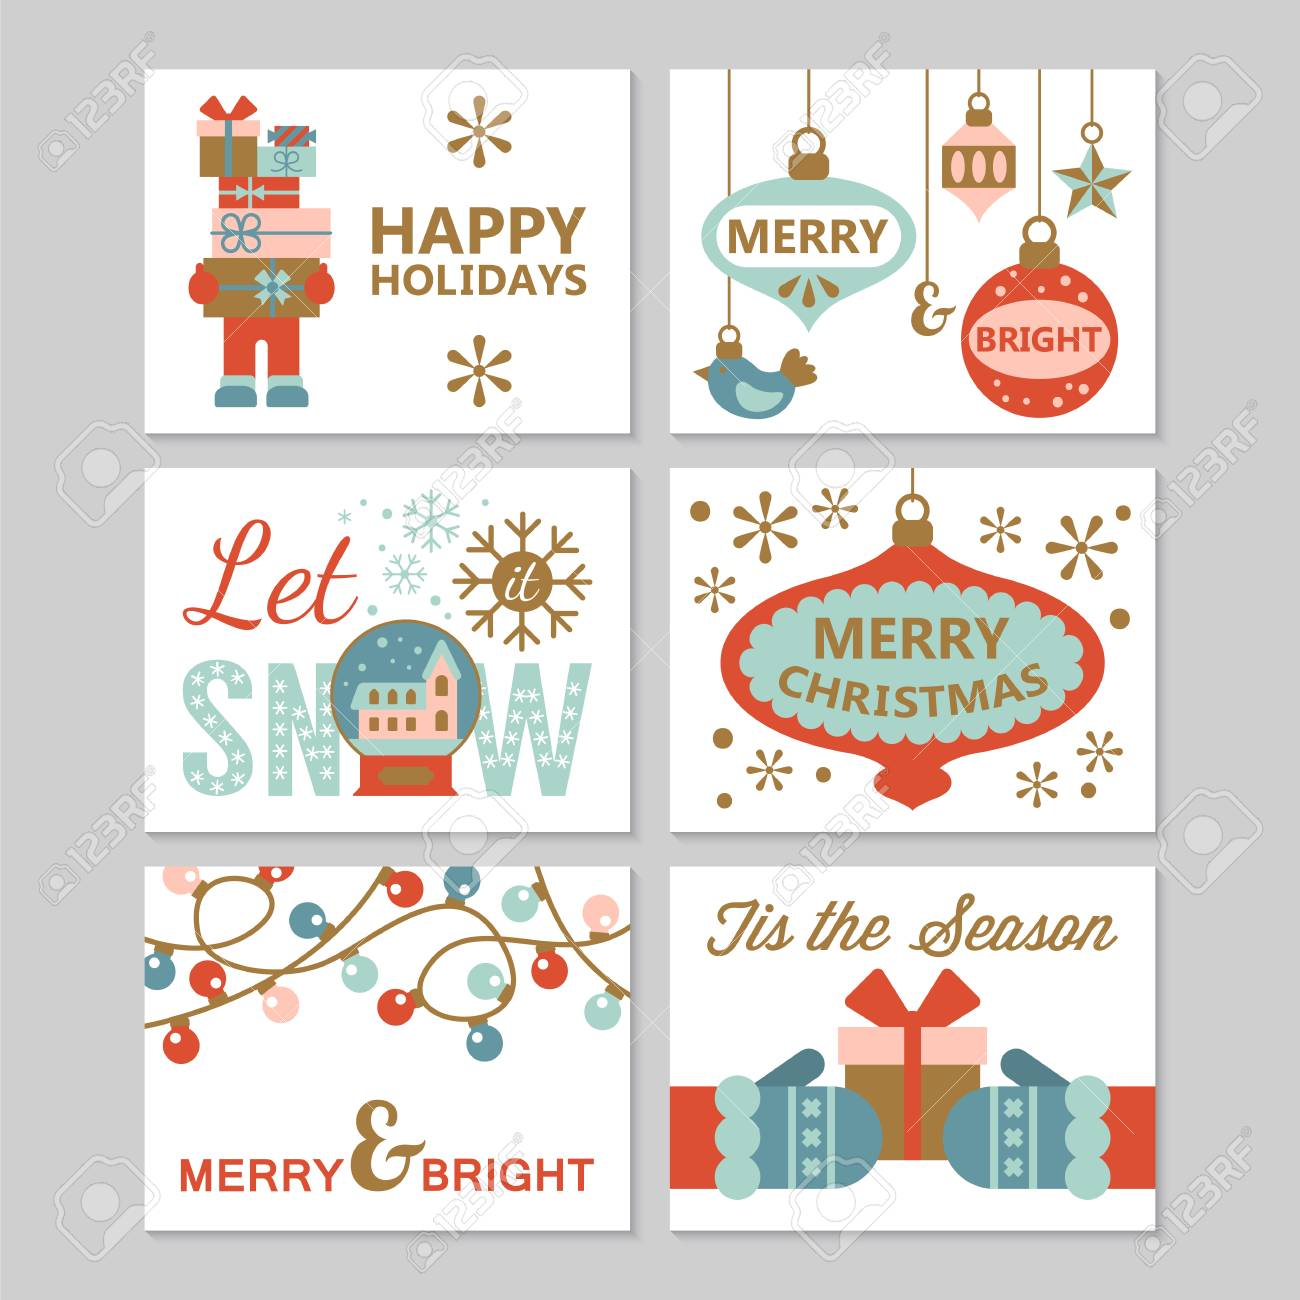 Greeting cards design for christmas holiday and new year modern greeting cards design for christmas holiday and new year modern stylish vector illustration stock vector m4hsunfo